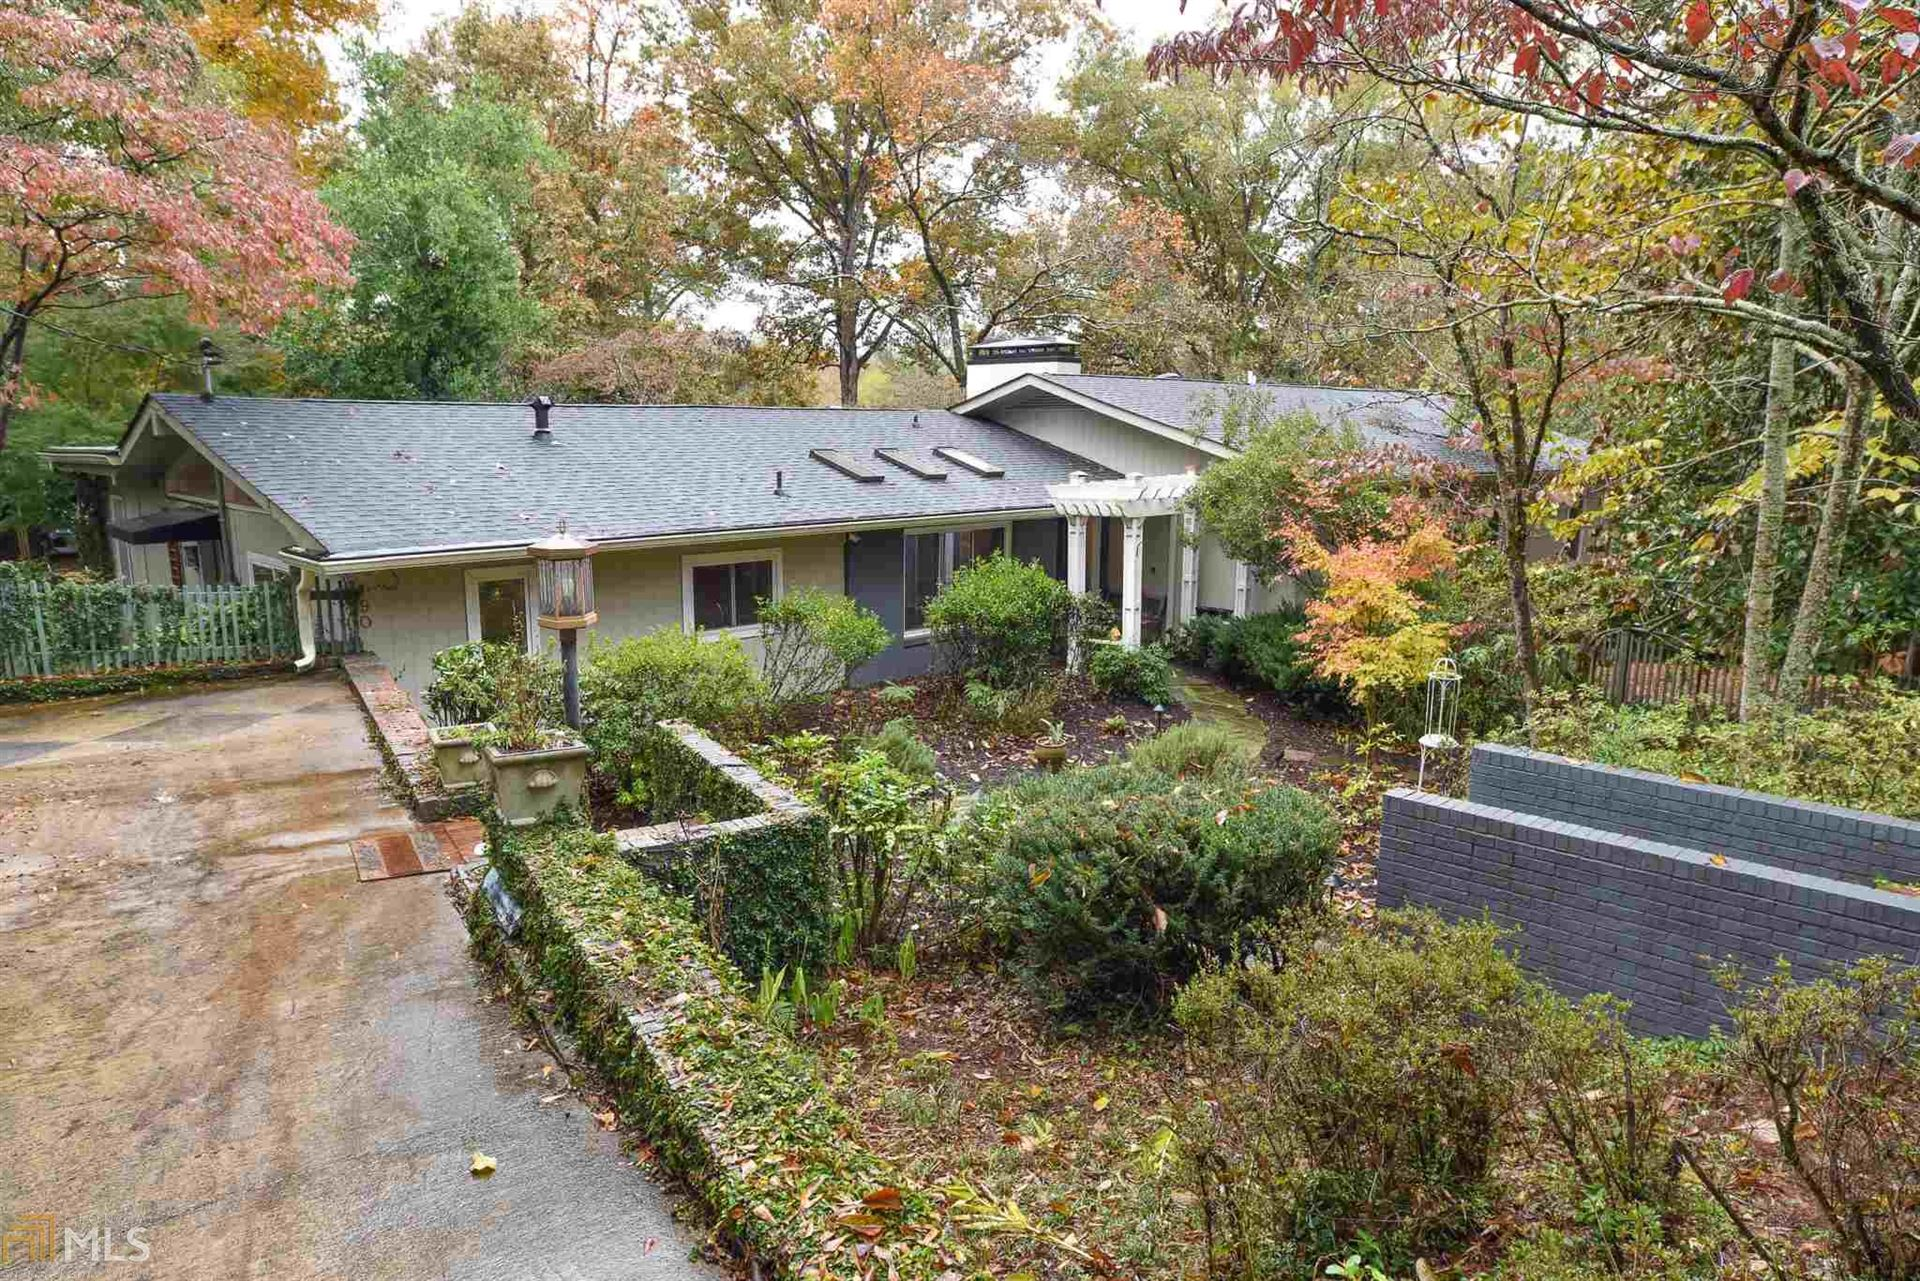 190 Plum Nelly Rd, Athens, GA 30606 - #: 8698274